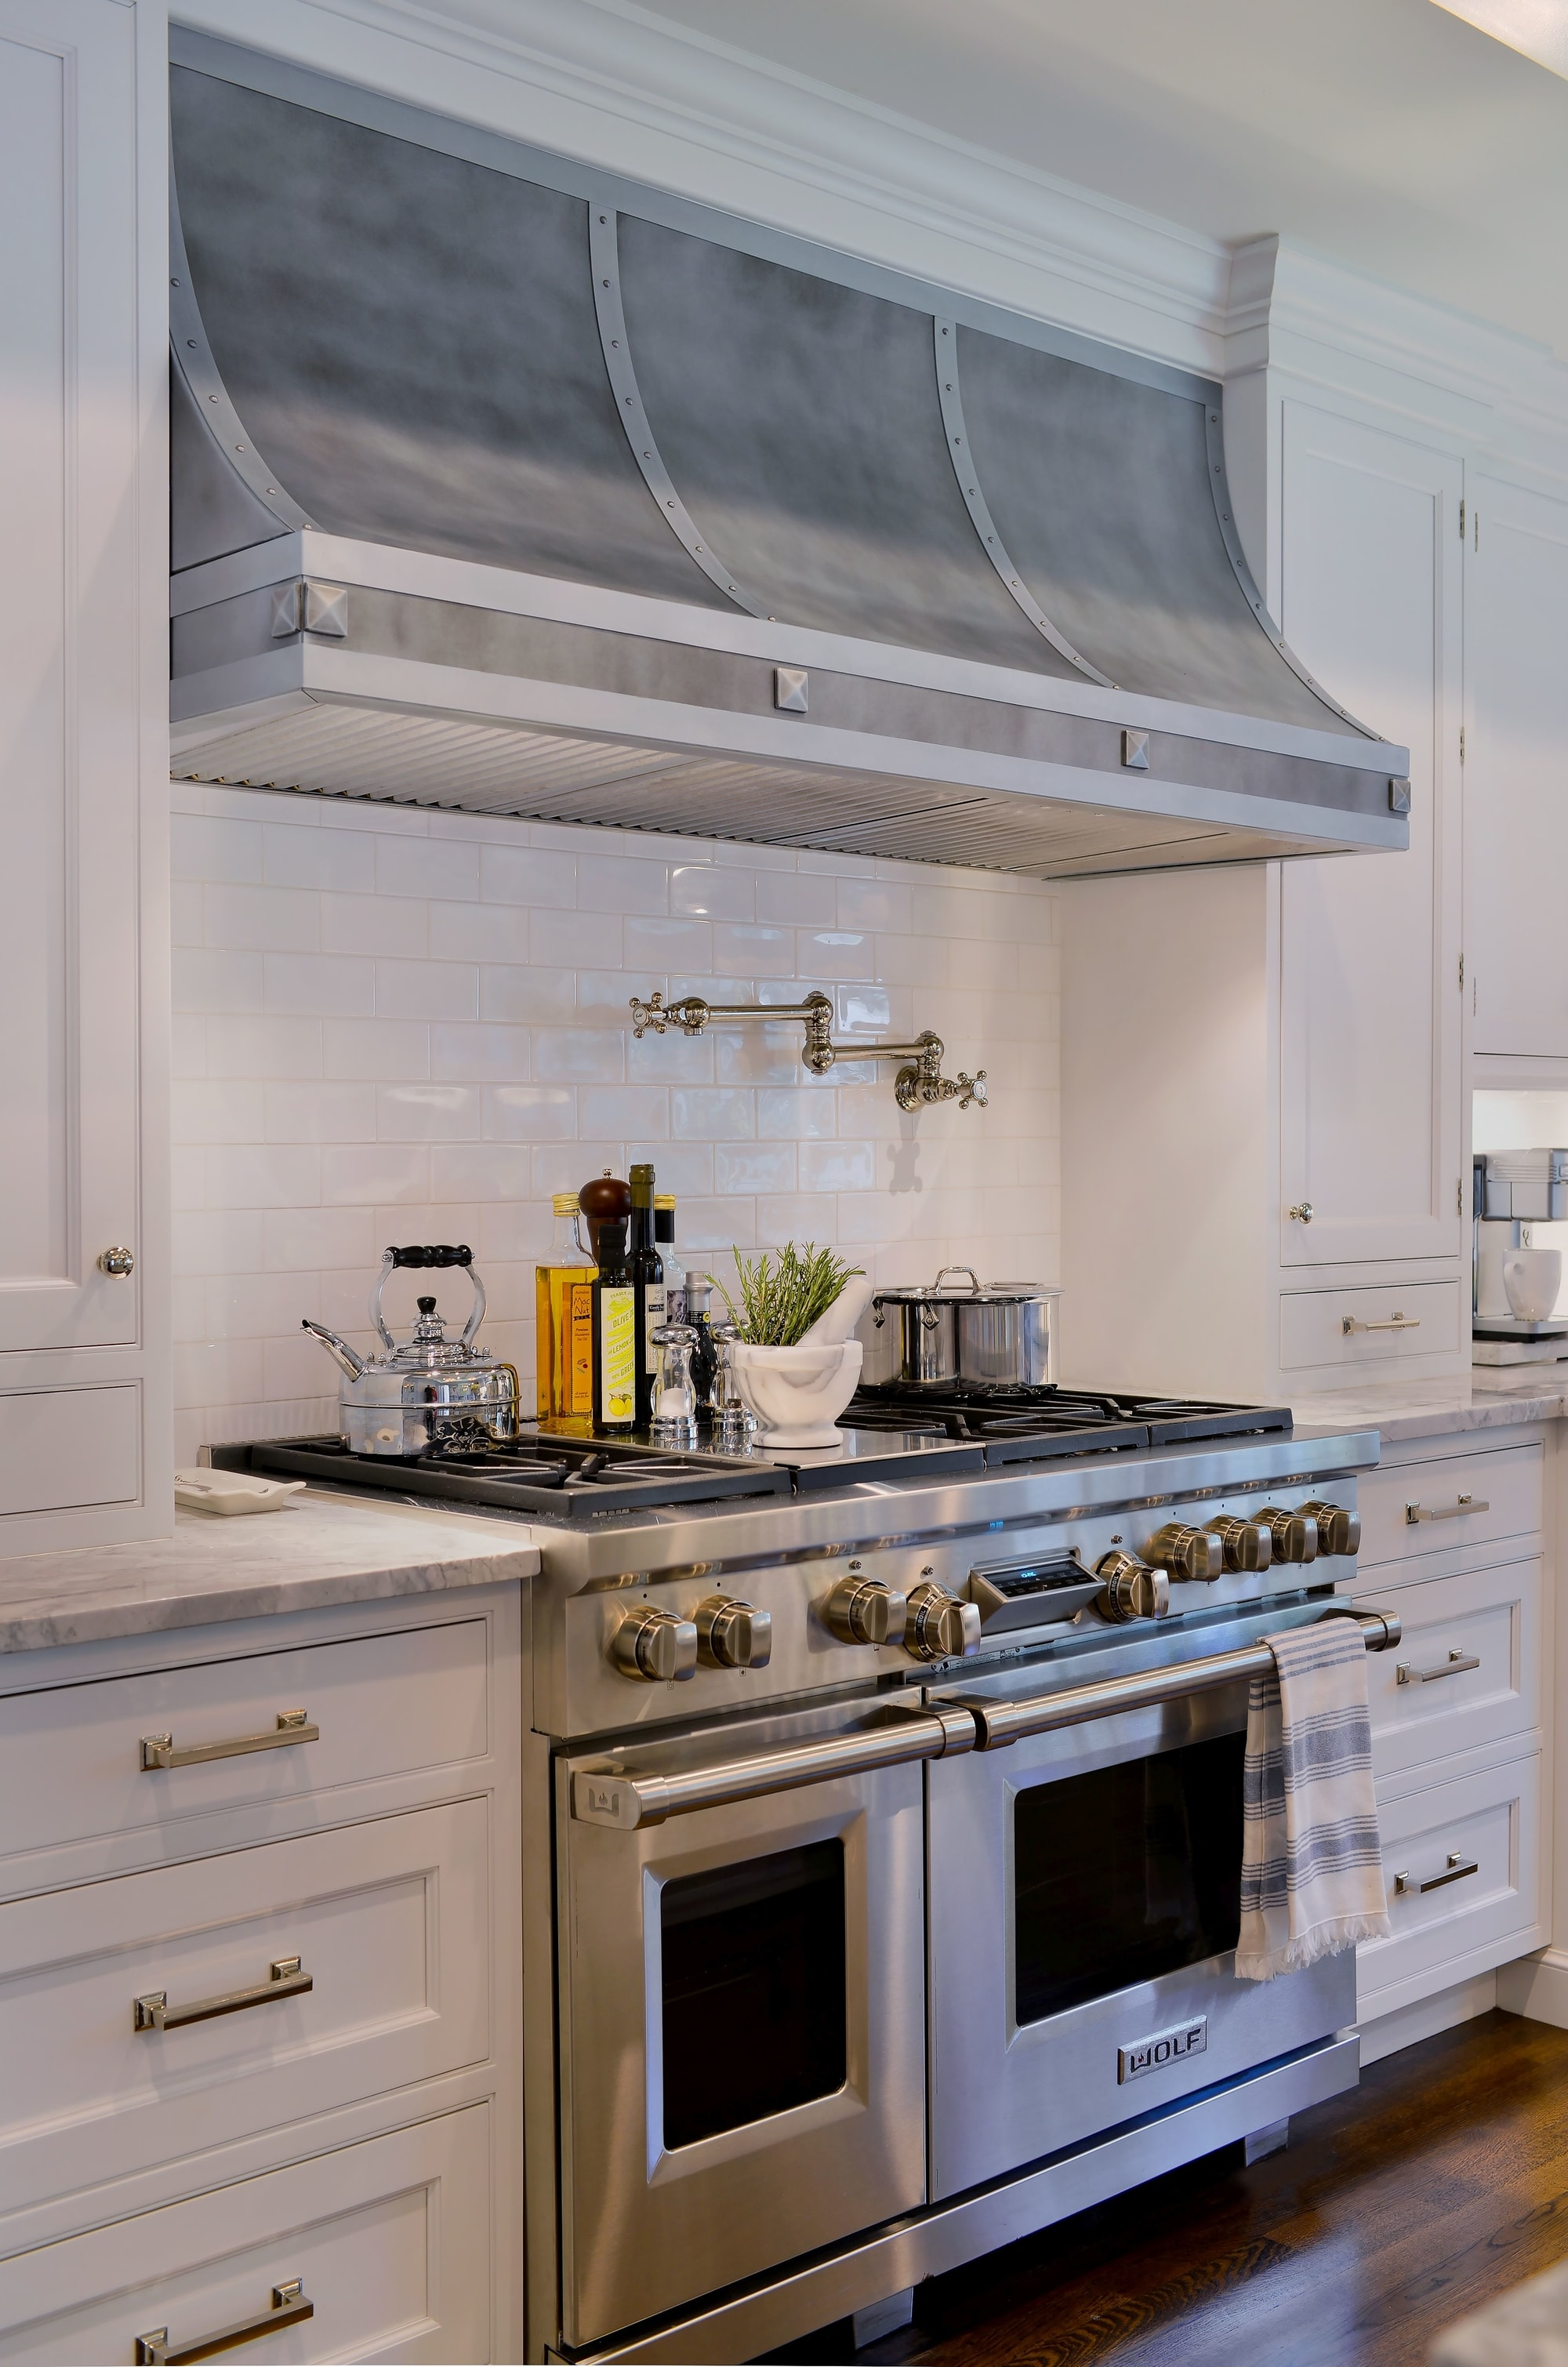 Transitional style kitchen with stainless range hood and range oven